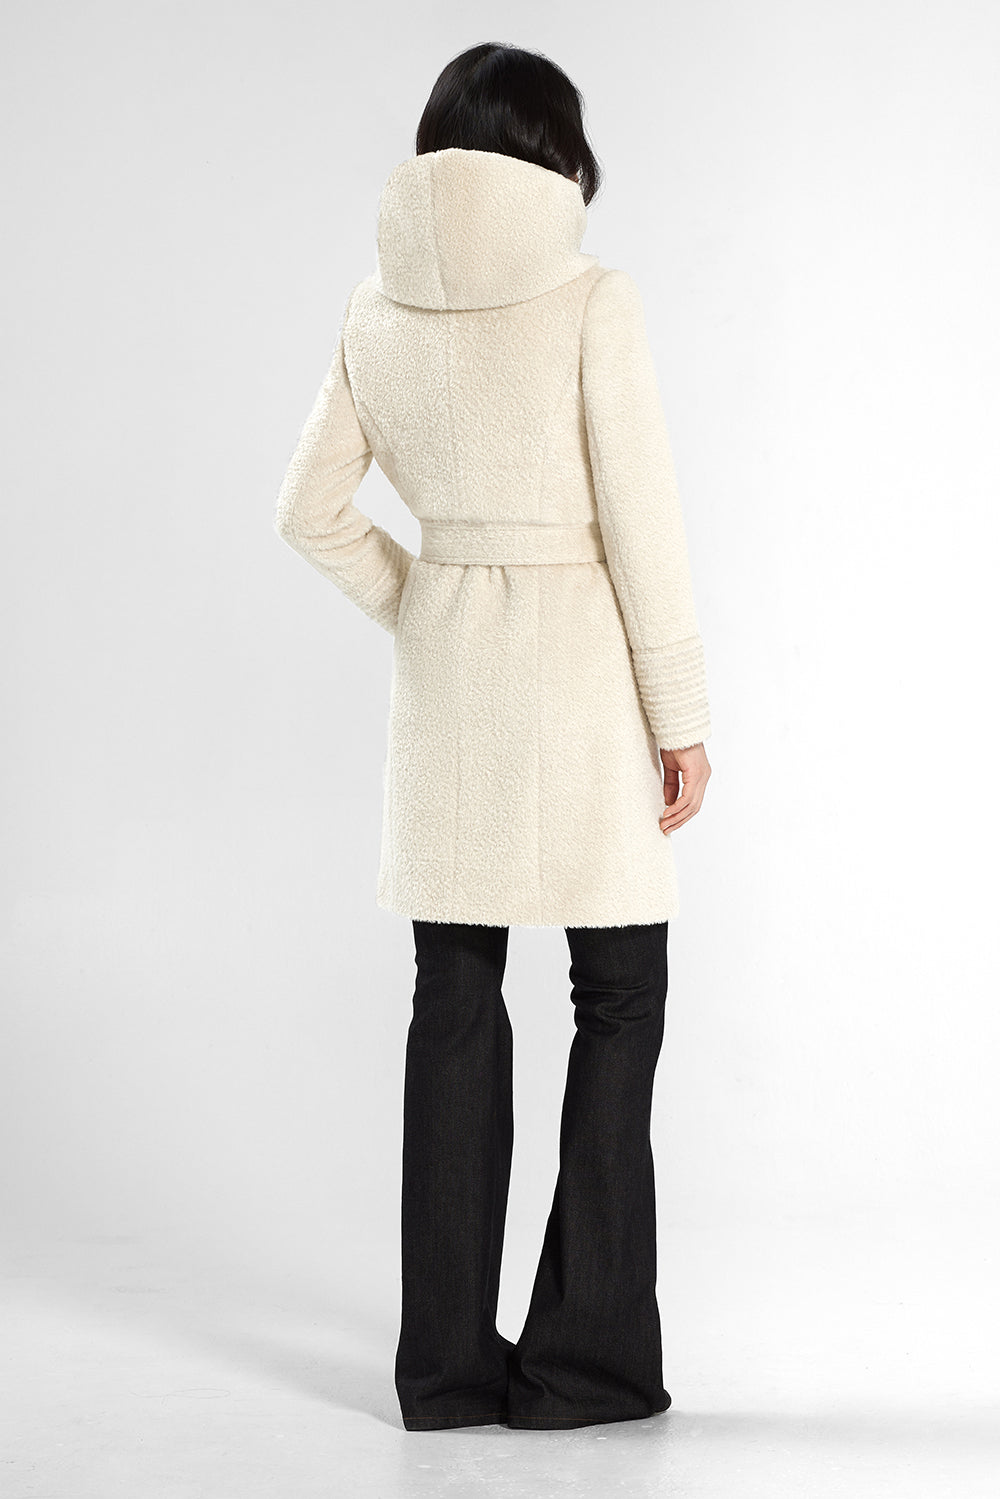 Sentaler Bouclé Alpaca Mid Length Hooded Wrap Coat featured in Bouclé Alpaca and available in Ivory. Seen from back.